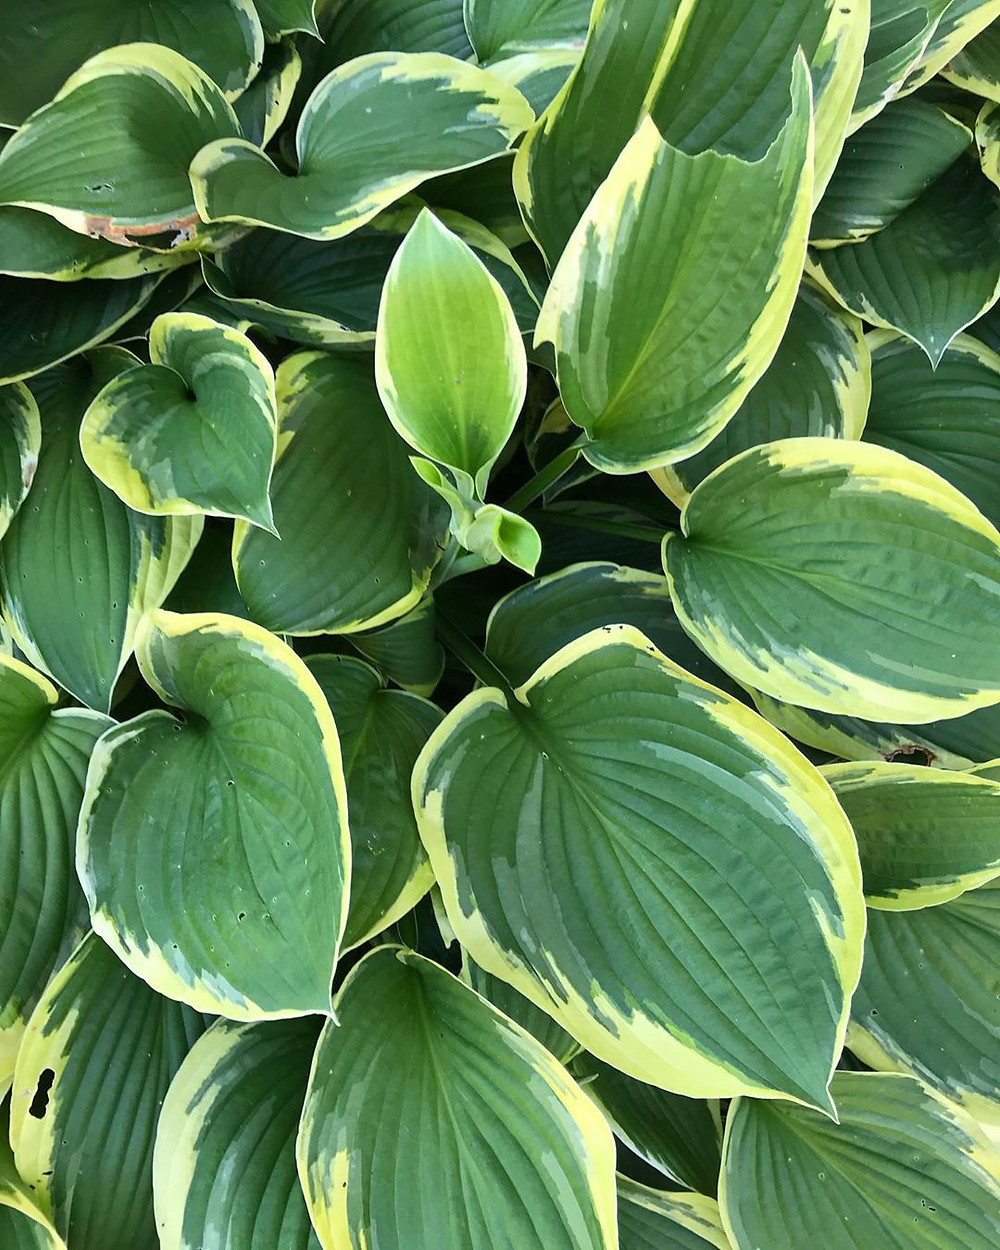 Hosta Variegated Houseplants That Will Add A Touch Of Soul To Your Home